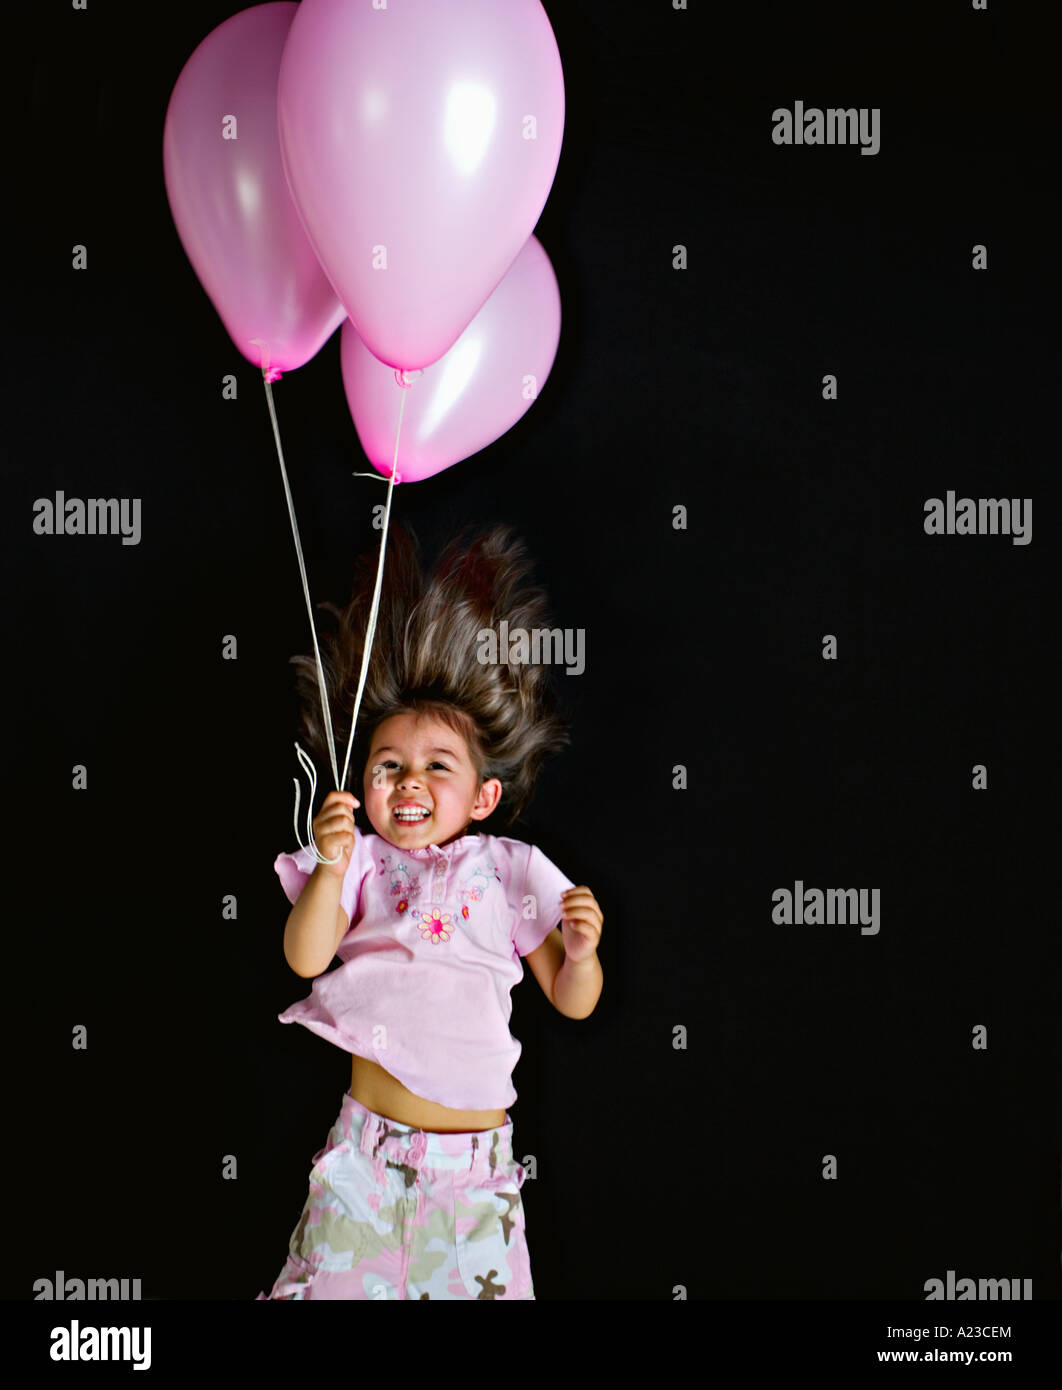 Girl swings through air with pink balloons - Stock Image